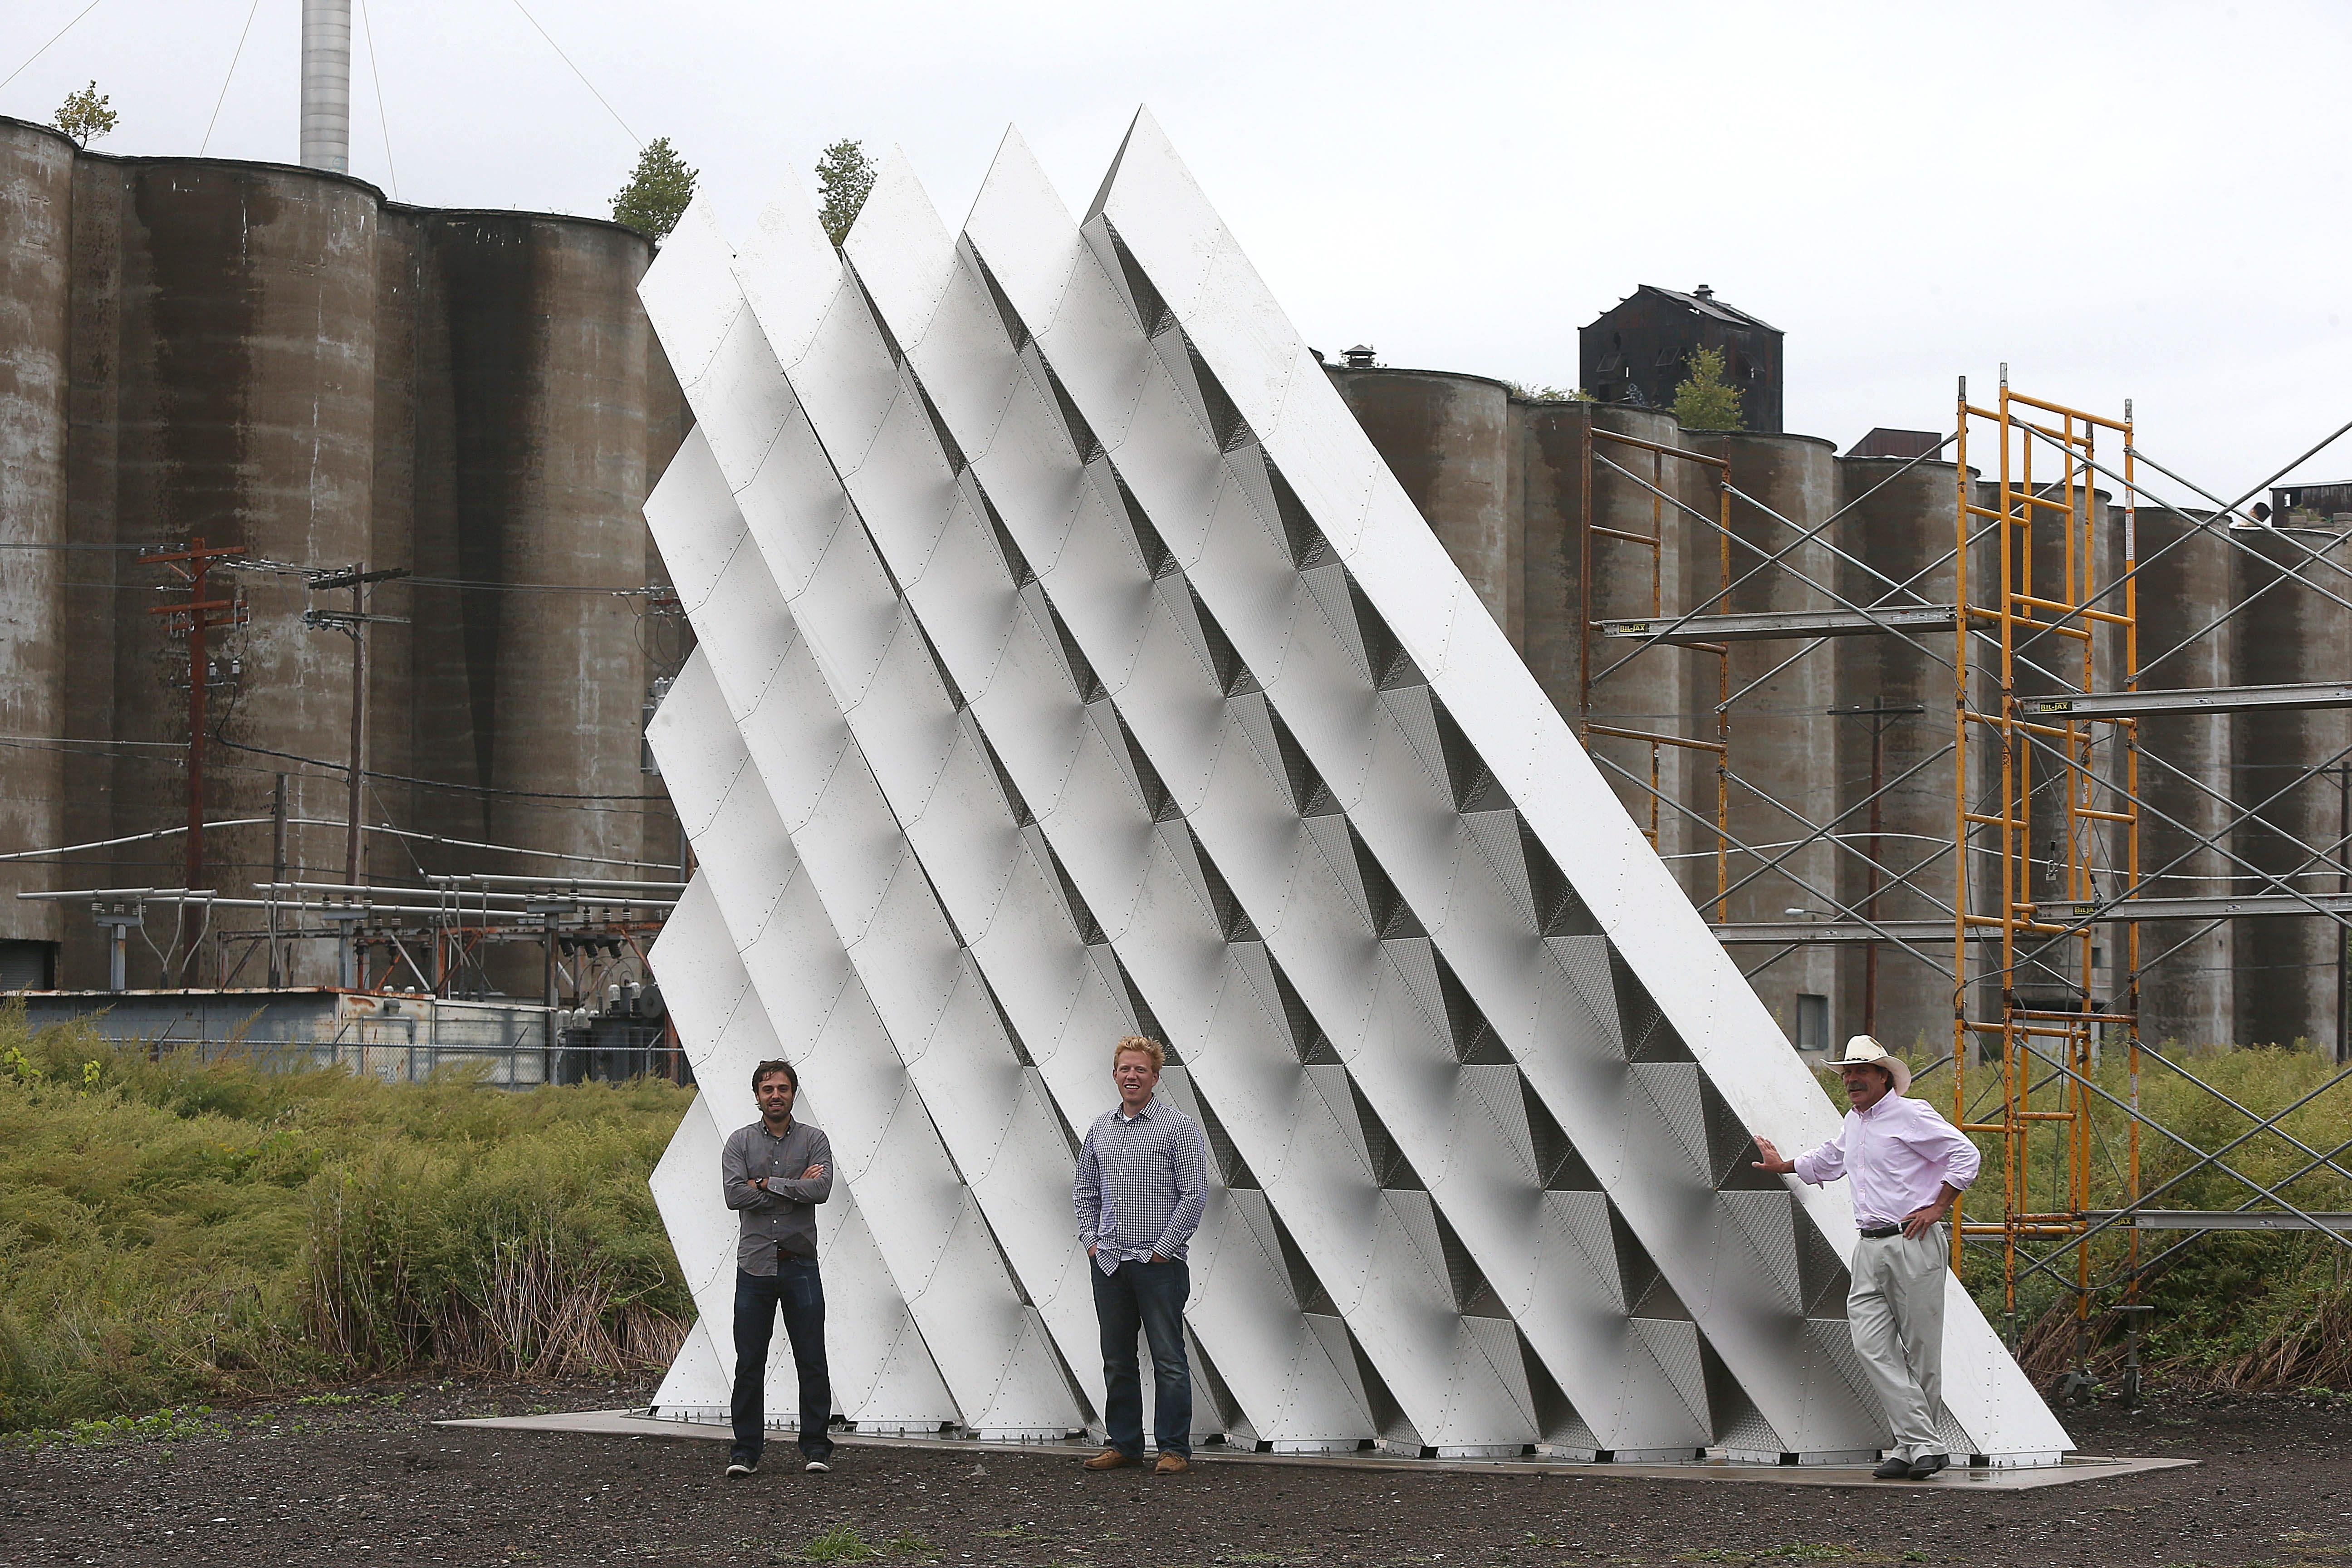 """With hat, Rick Smith, and UB architecture professors Chris Romano, center, and Nick Bruscia, in gray shirt, pose with the experimental facade """"Project 2XmT"""" near Childs St. in South Buffalo on Thursday, Sept. 12, 2013.  (Robert Kirkham/Buffalo News)"""